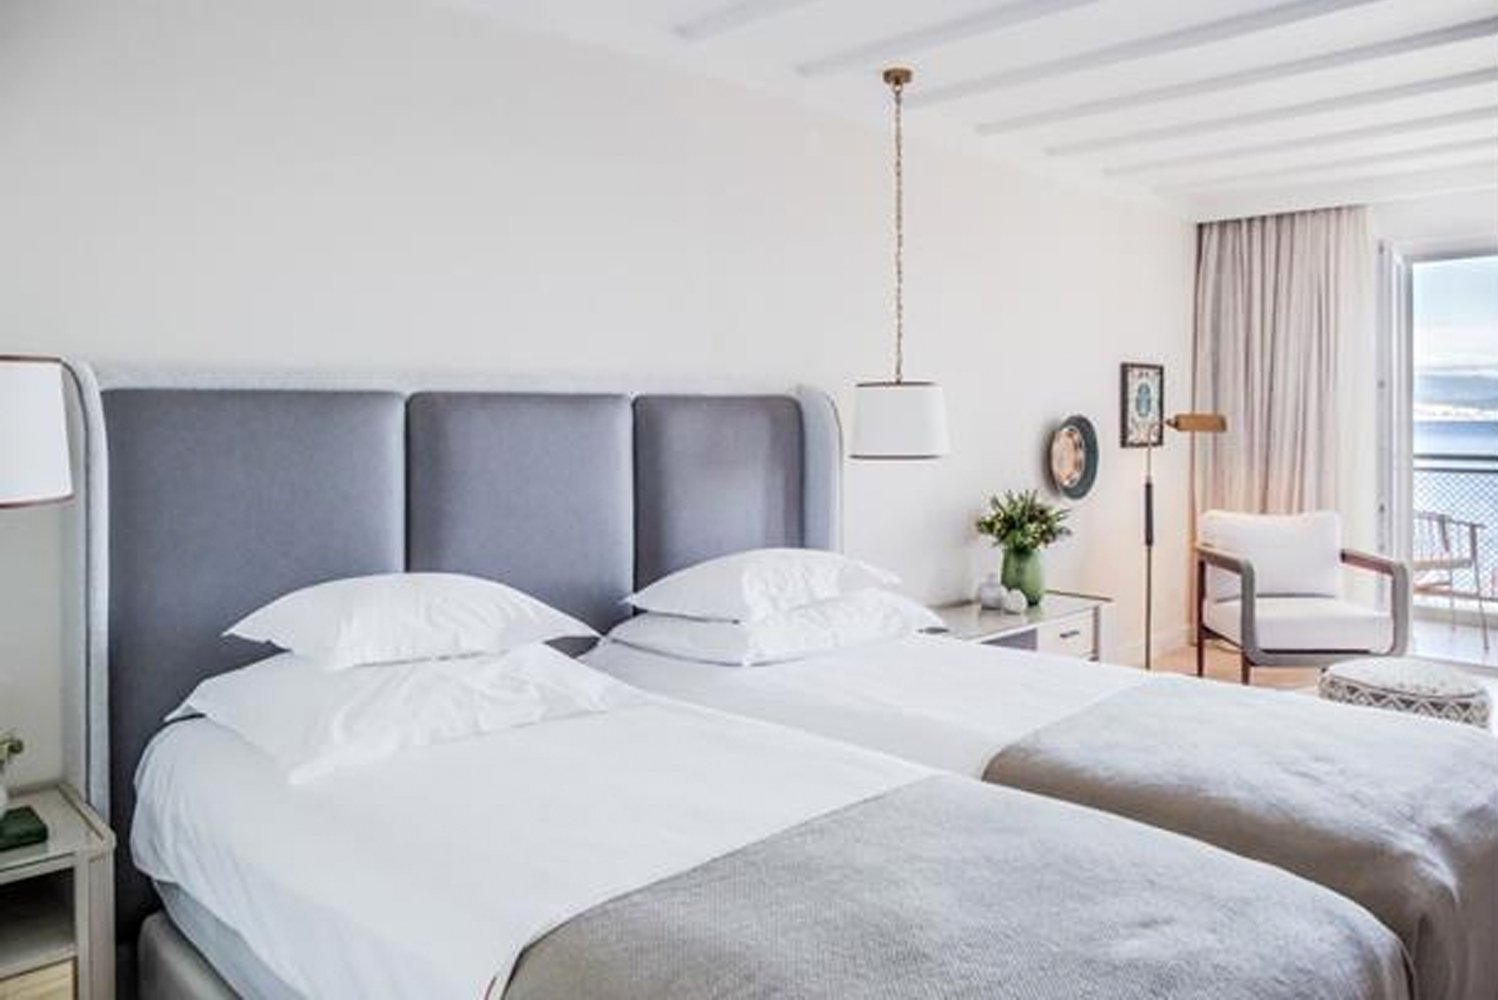 HBA London completed the first phase of a total refurbishment of Camellia Hotel in the Croatian coastal destination of Opatija.